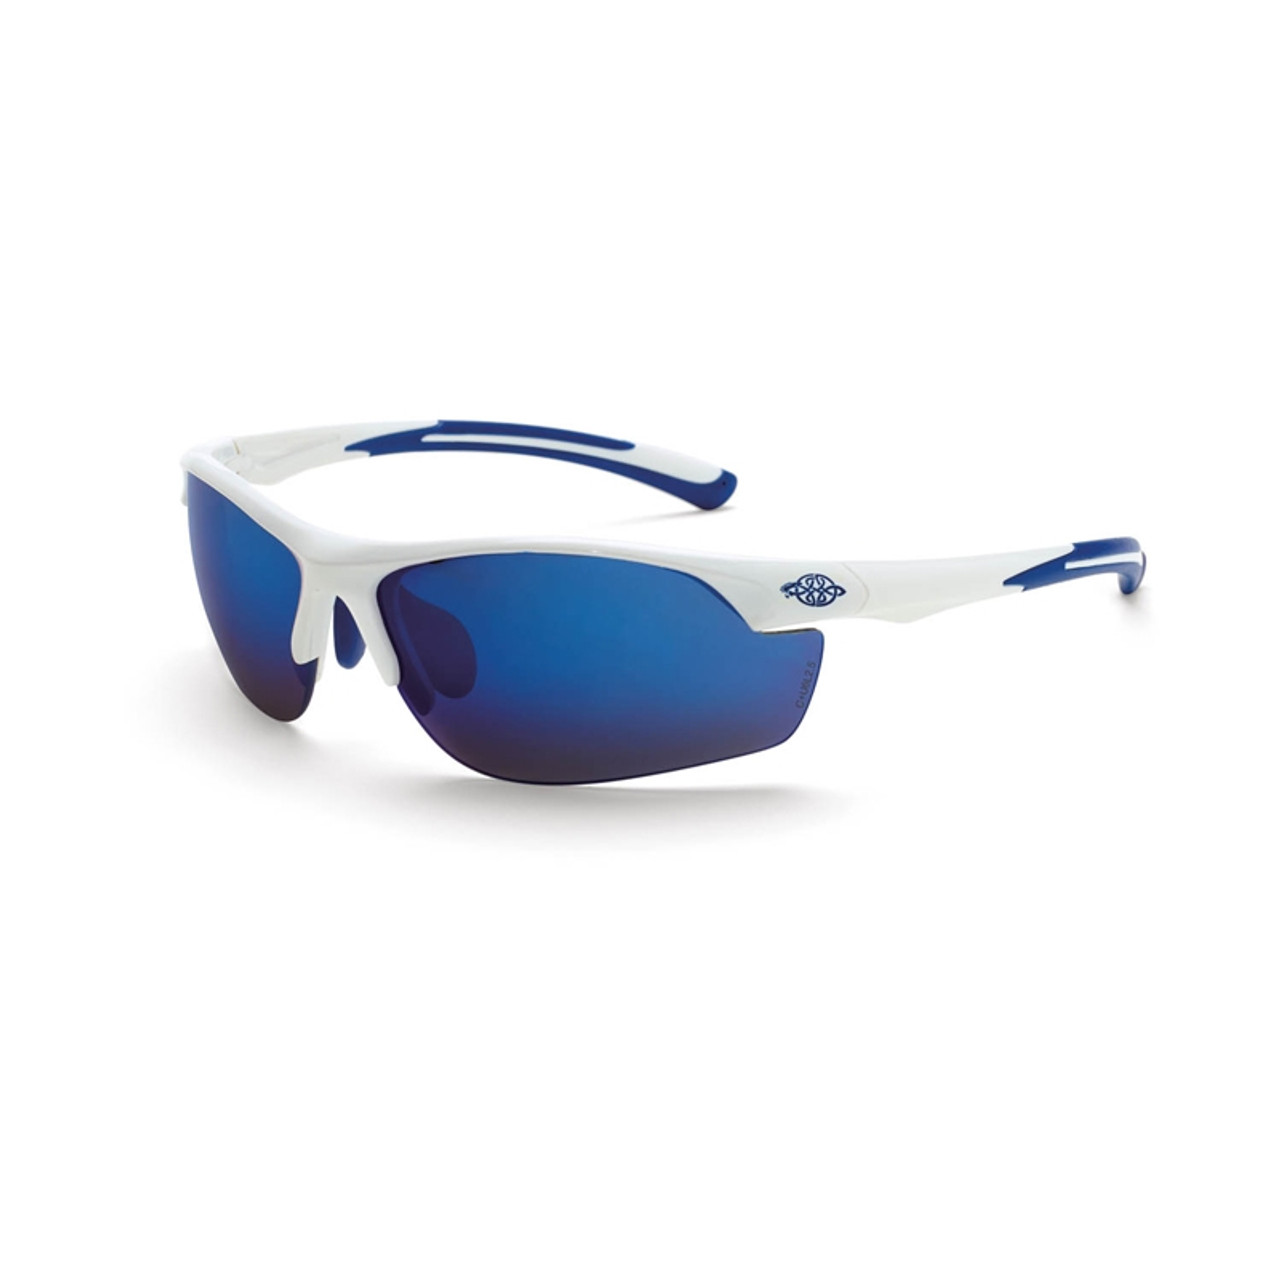 17a5279321 Crossfire AR3 16278 Blue Mirror Lens Safety Glasses - Box of 12